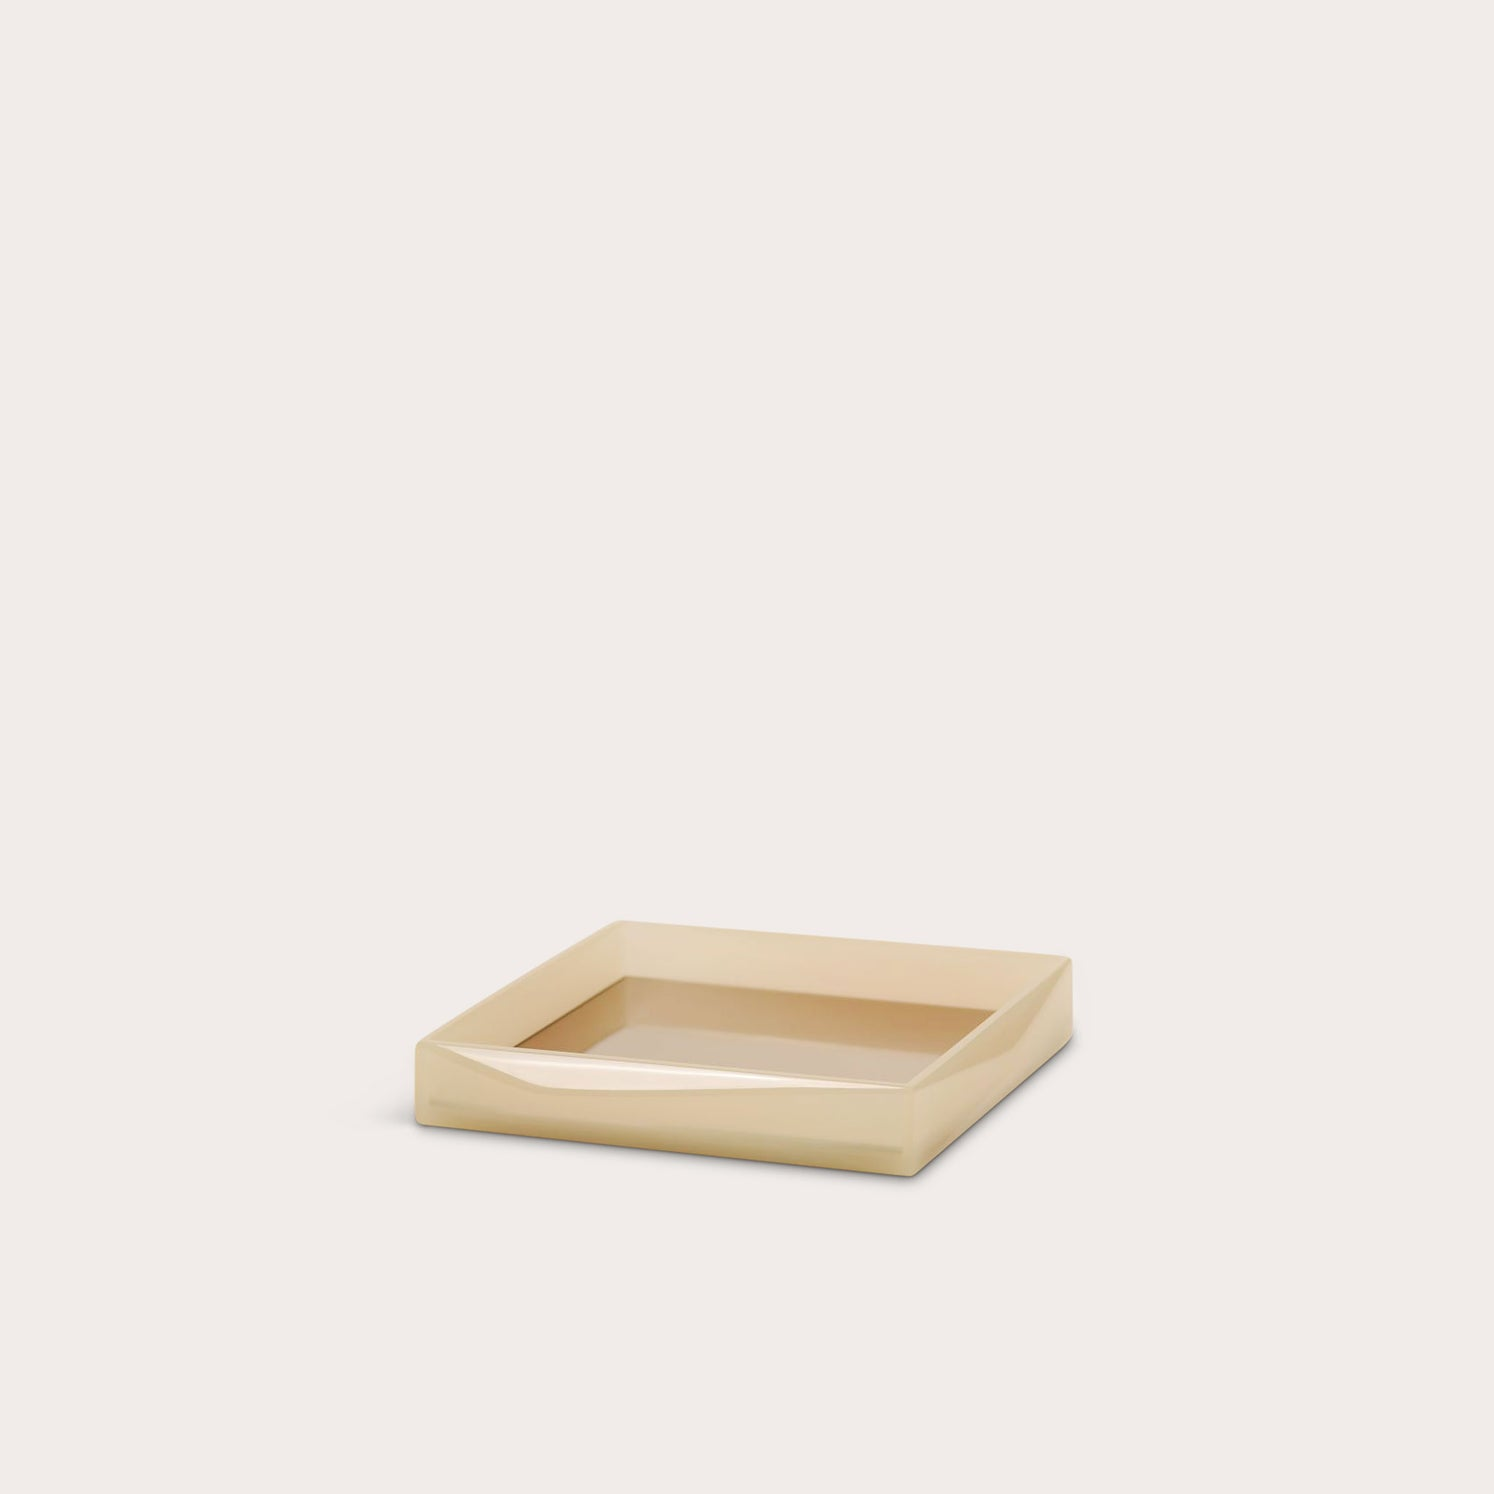 Faceted Tray Accessories Simone Coste Designer Furniture Sku: 992-100-10022